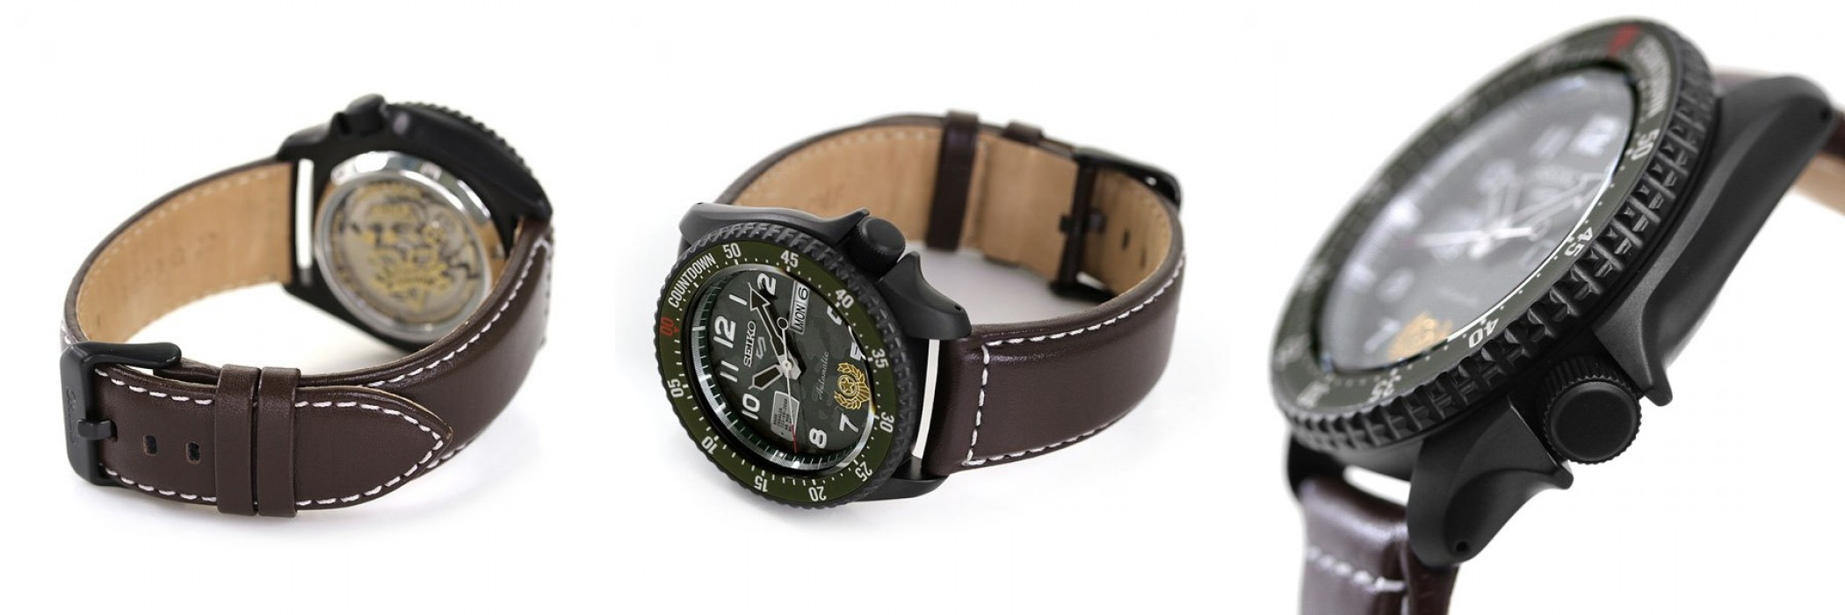 SRPF21 Seiko 5 Sports Street Fighters V Limited Edition - GUILE